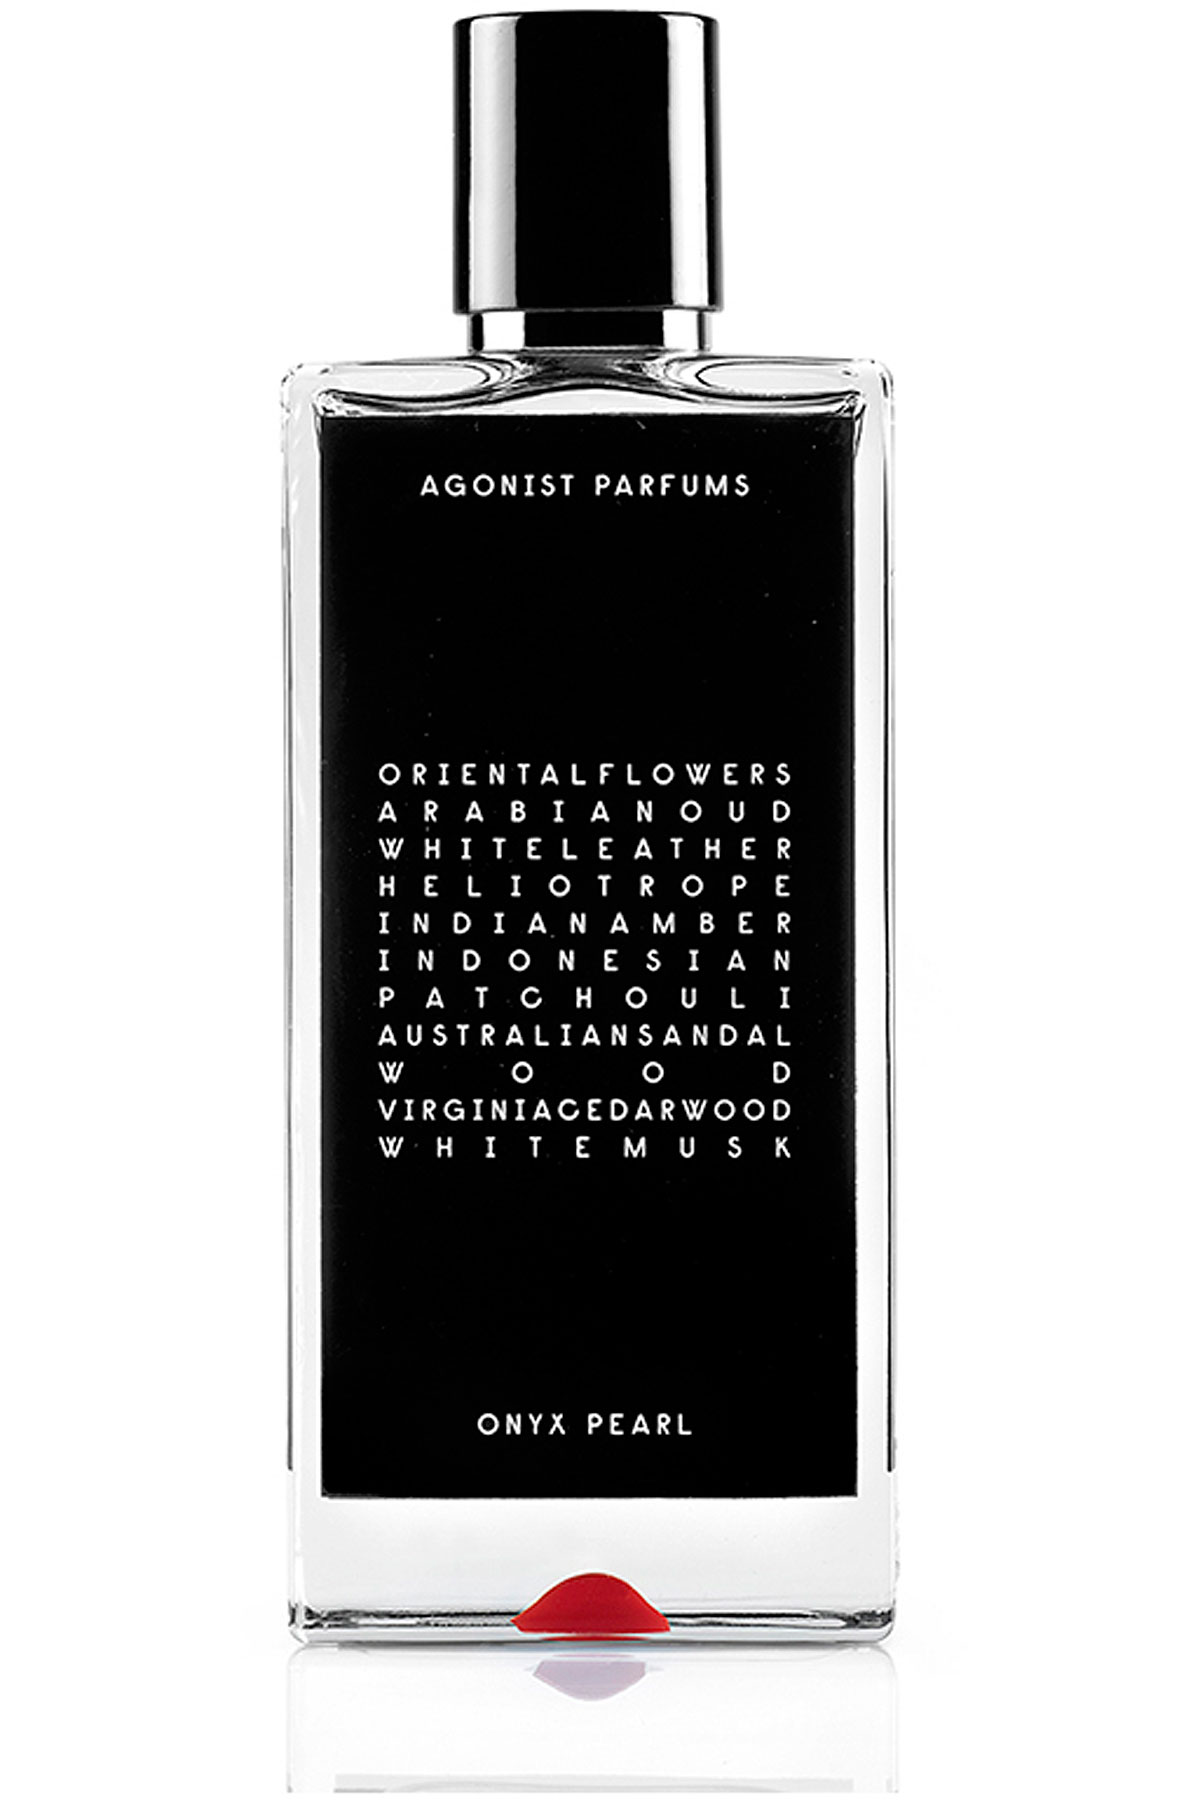 Agonist Fragrances for Women, Onyx Pearl - Eau De Parfum - 50 Ml, 2019, 50 ml